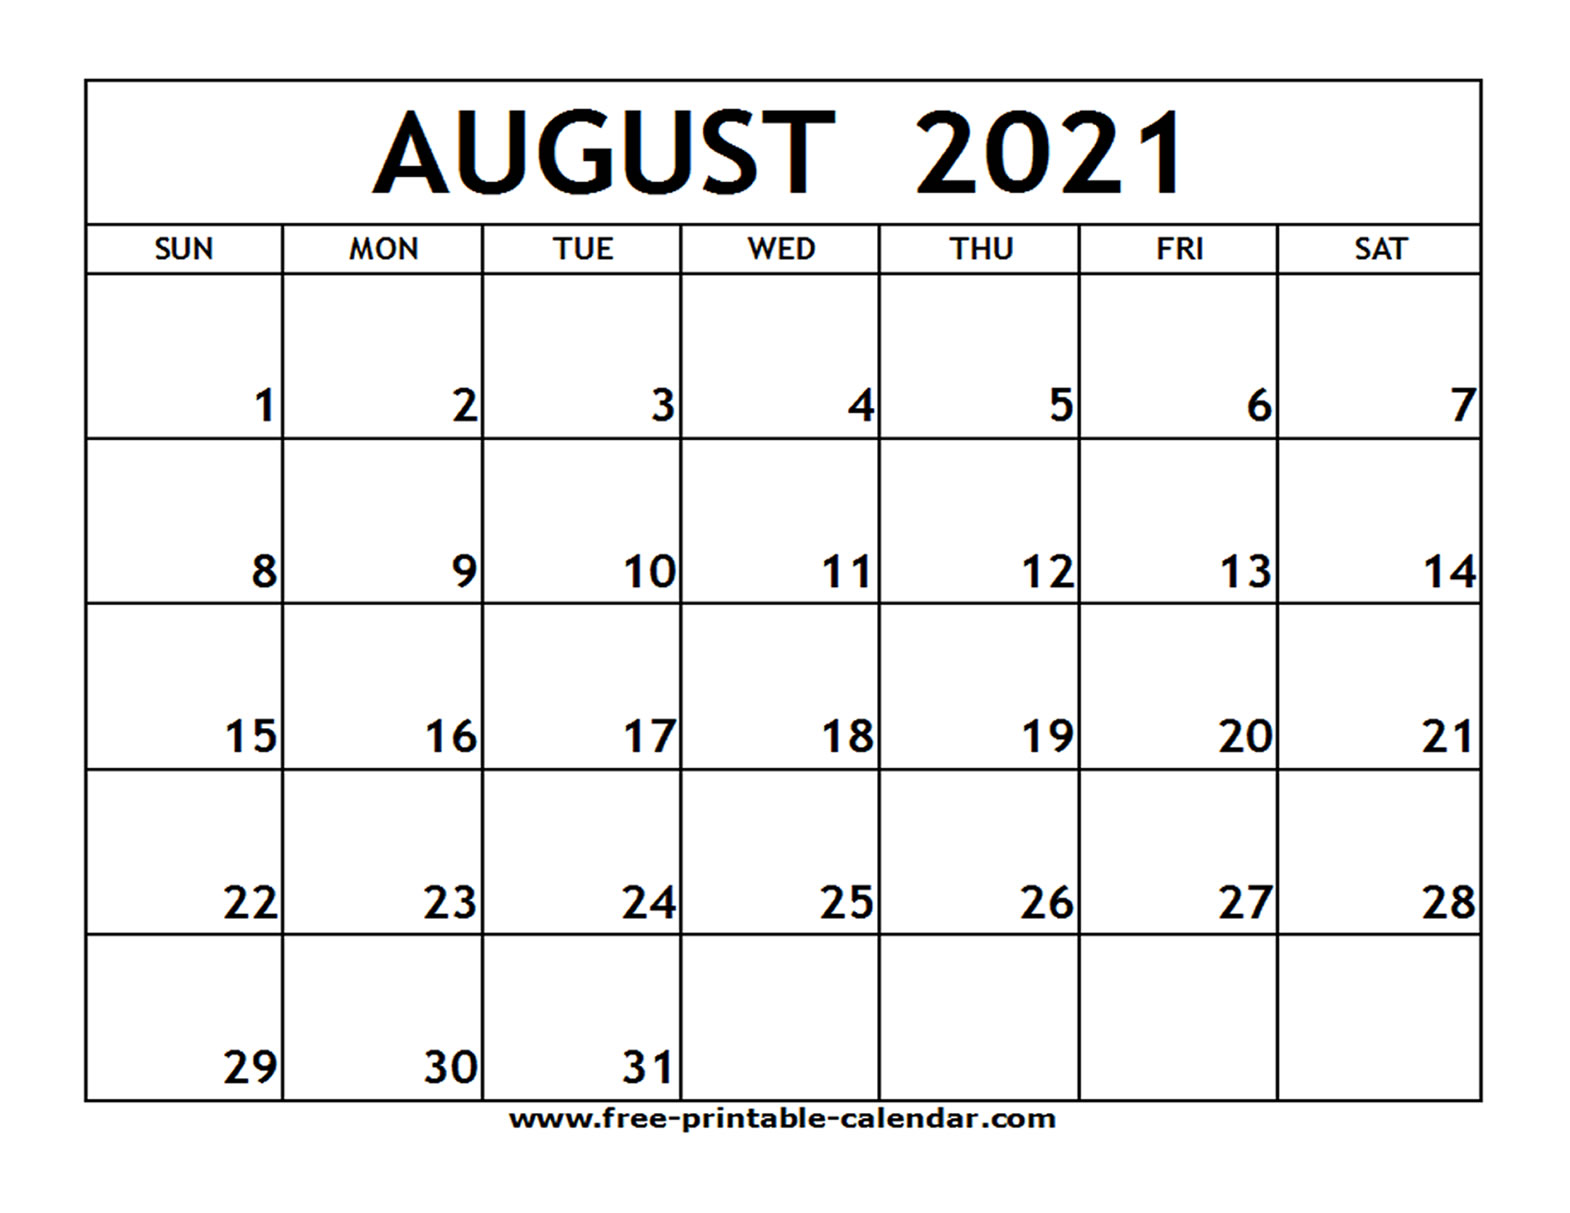 30 Beautiful Printable August 2021 Calendars for Free ...